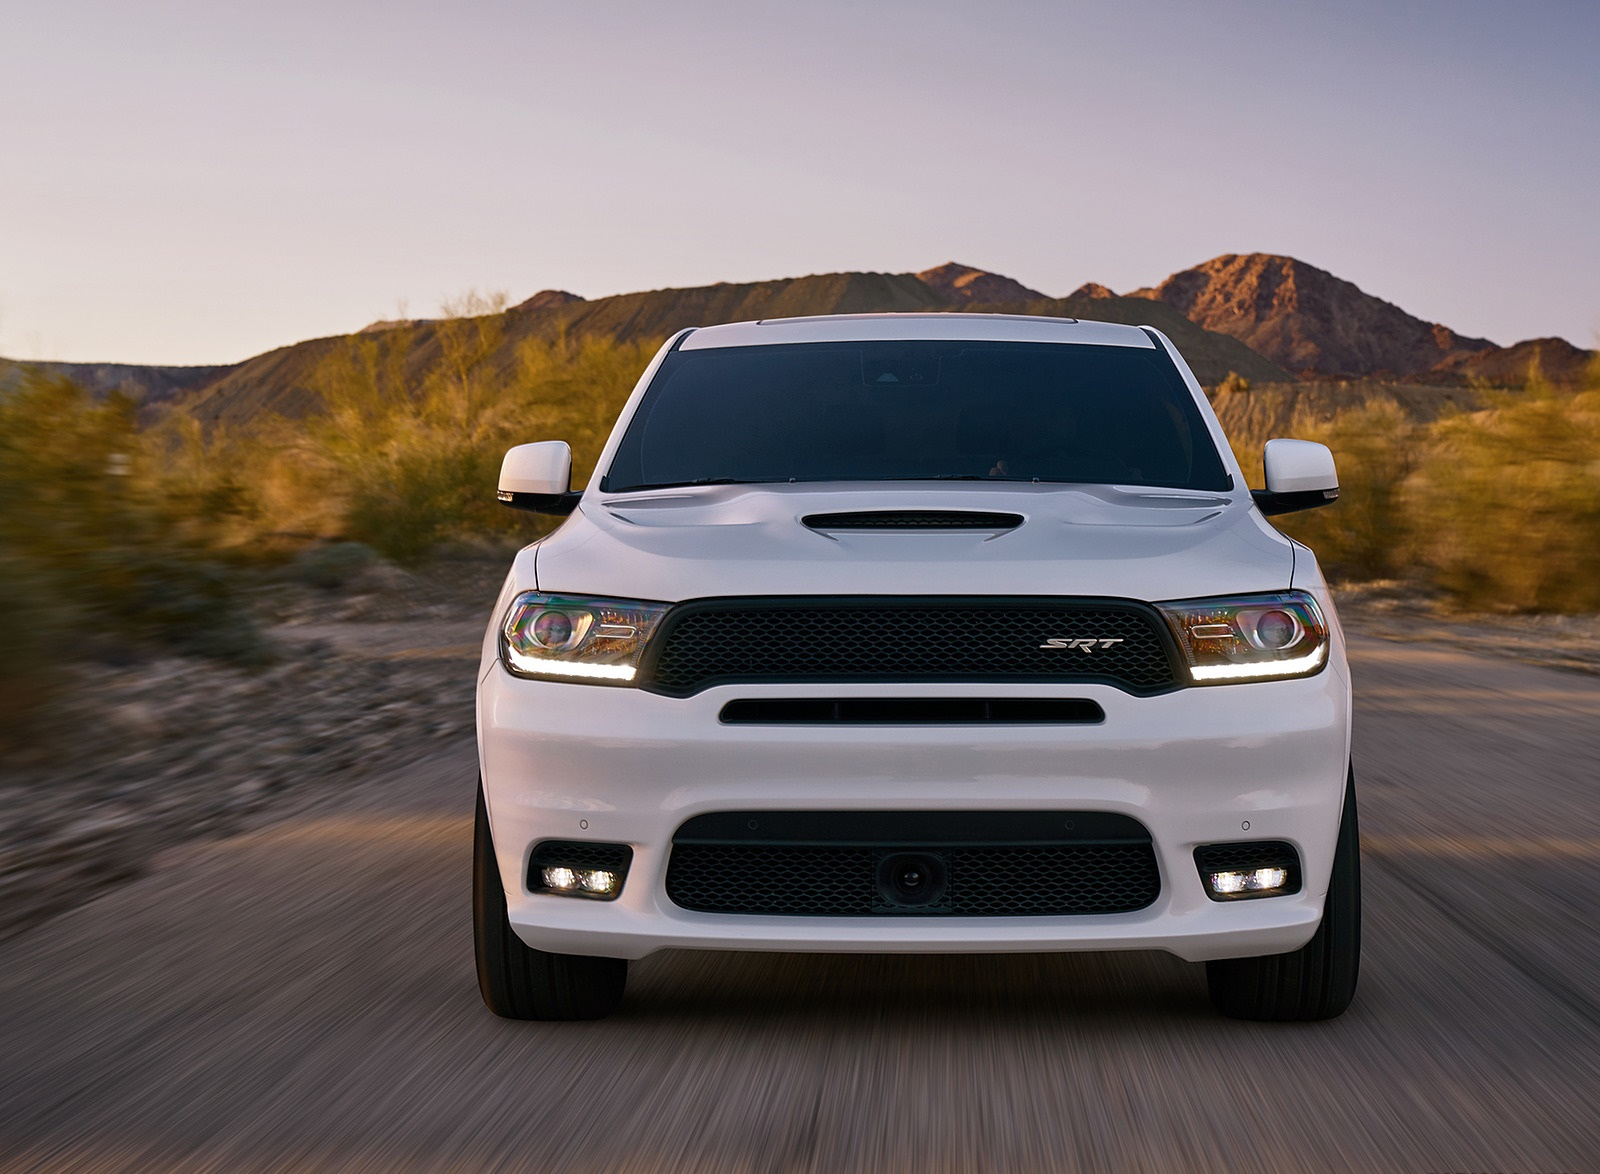 2018 Dodge Durango Srt Wallpapers 86 Hd Images Newcarcars